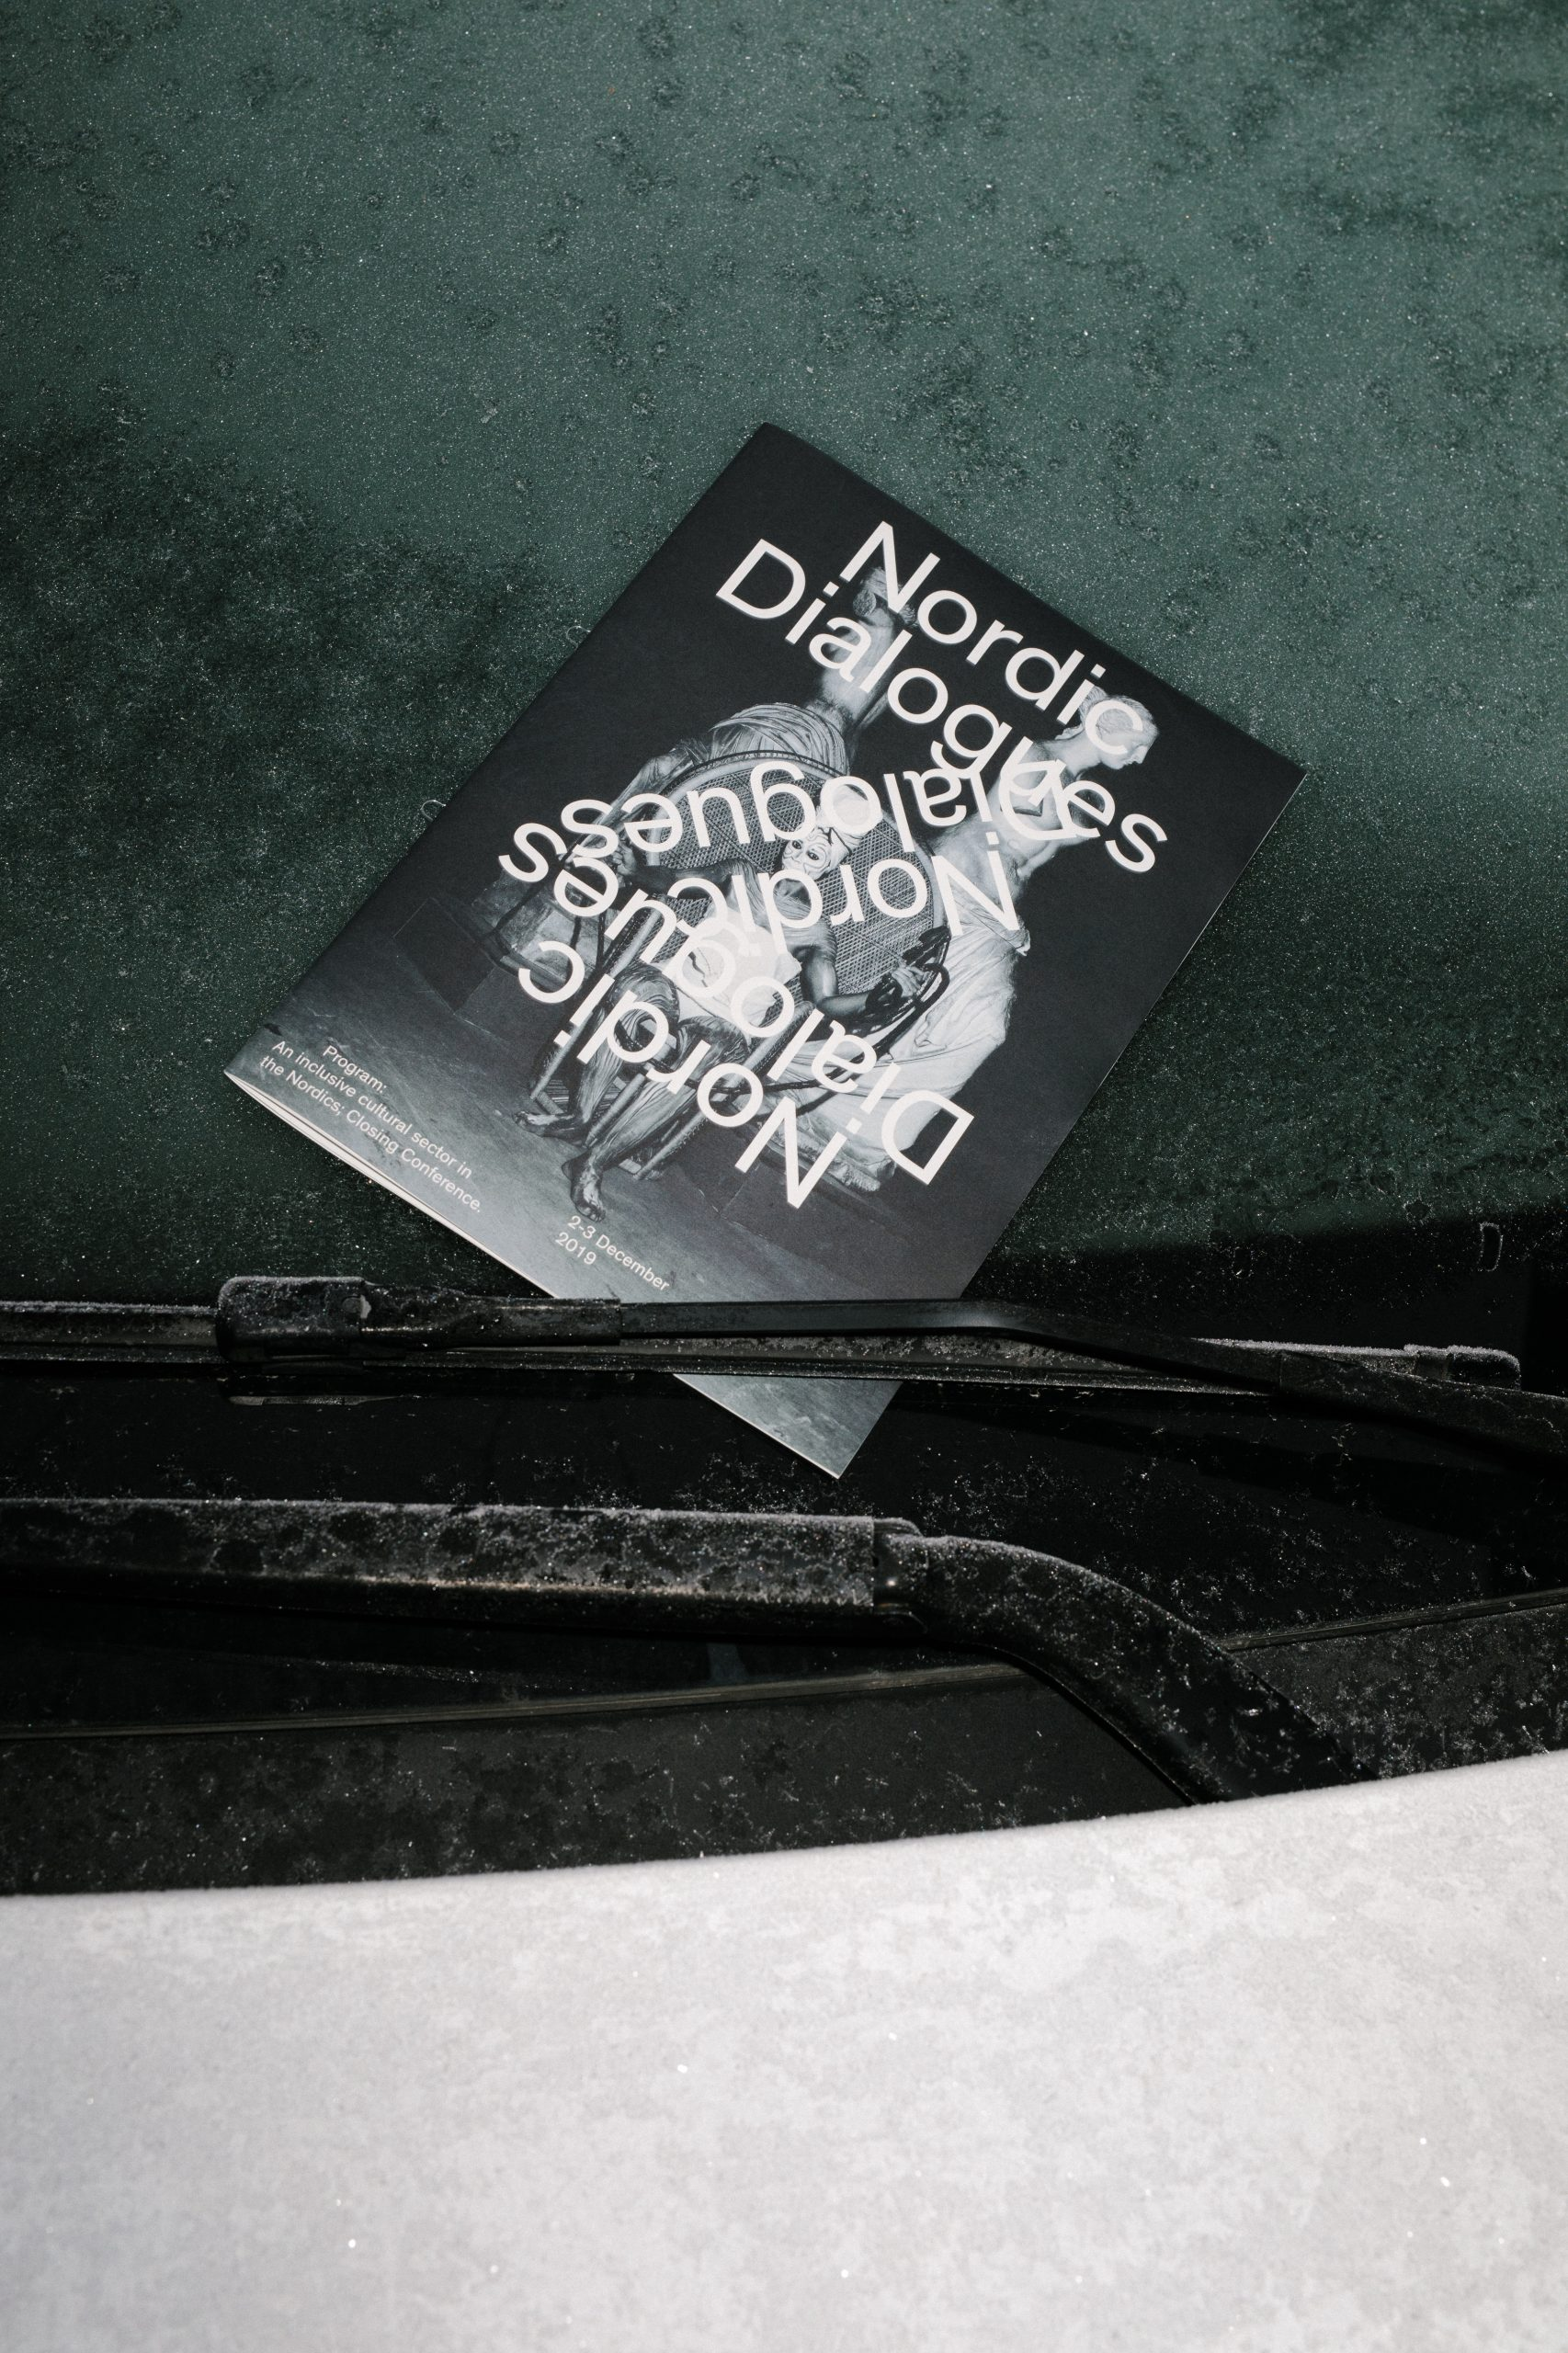 Photo: Jan Khür – www.jankhur.com